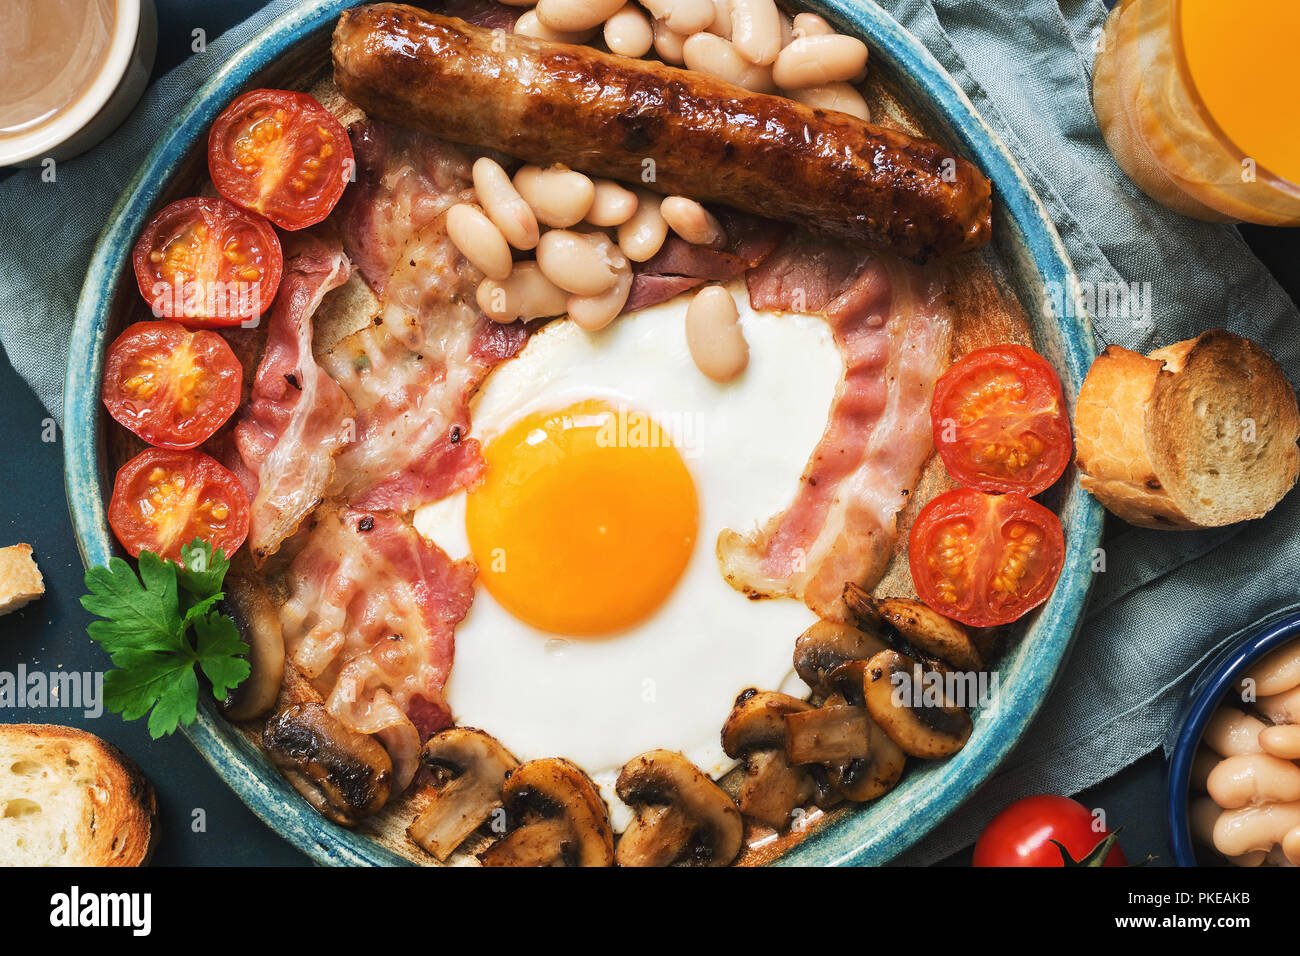 Traditional English breakfast close-up on a blue background, top view. Fried egg with sausage, mushrooms, beans, tomatoes and bacon. - Stock Image